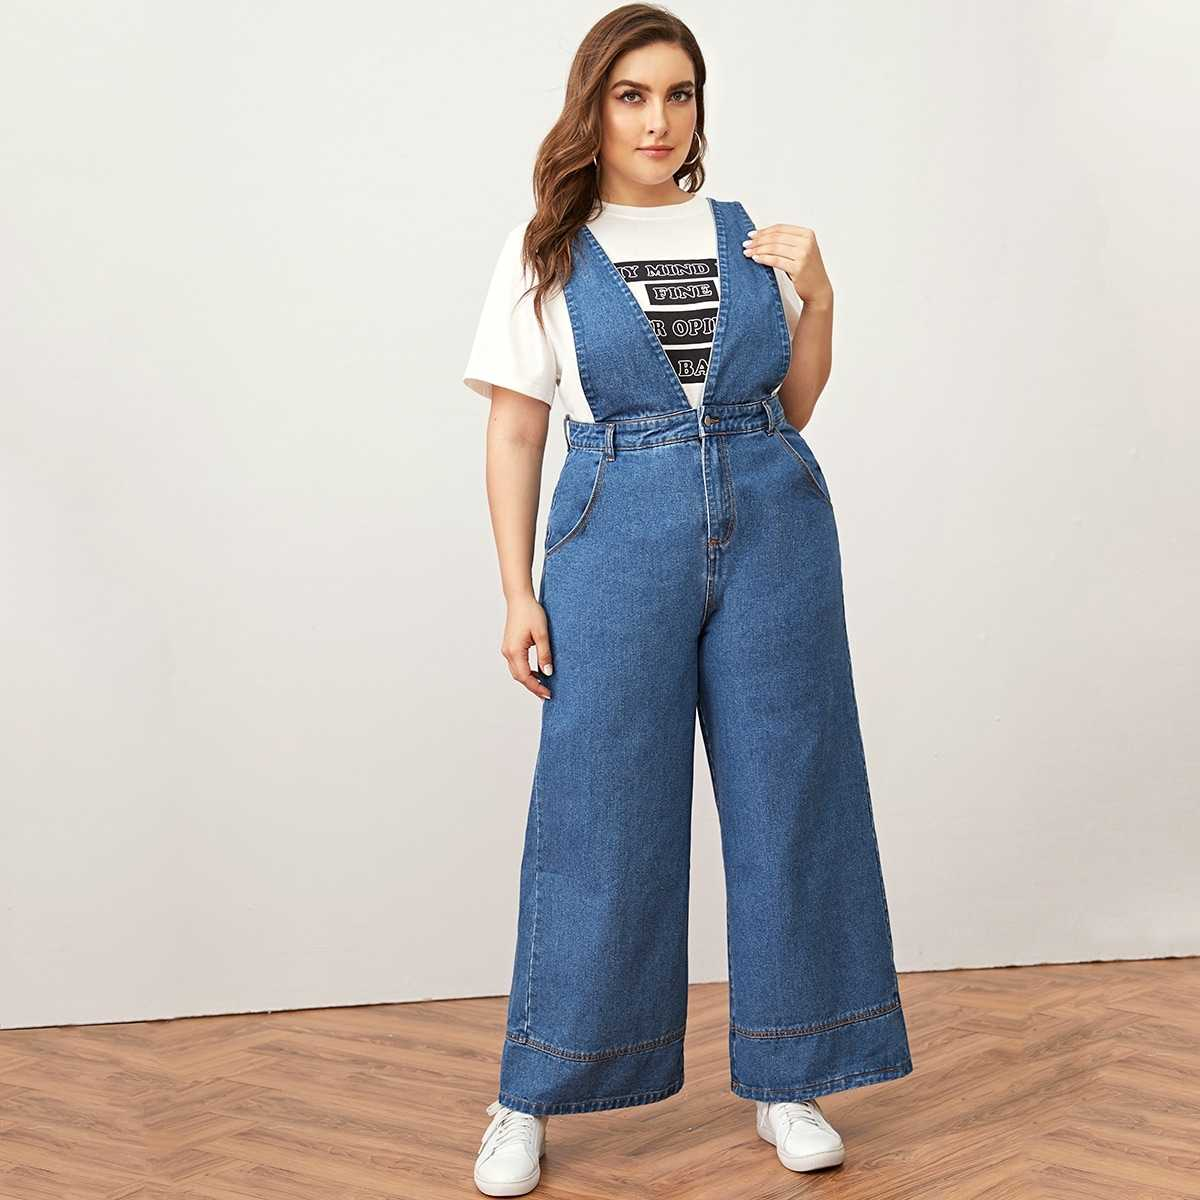 Plus Bleach Wash Wide Leg Denim Overall in Blue by ROMWE on GOOFASH